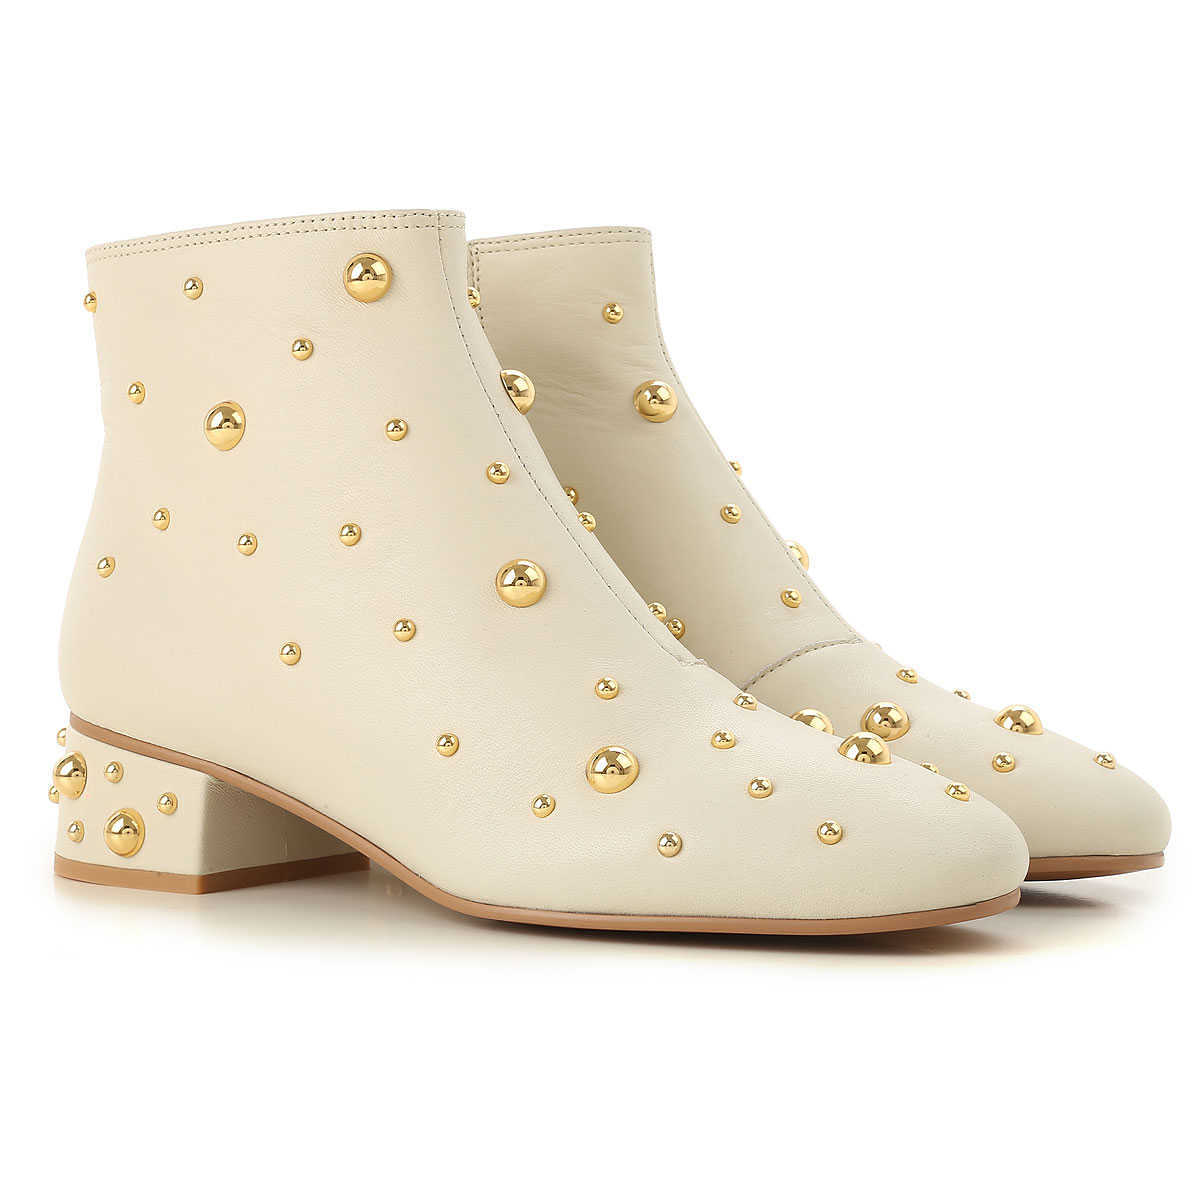 See By Chloe Boots for Women 3.5 4.5 7.5 Booties On Sale in Outlet UK - GOOFASH